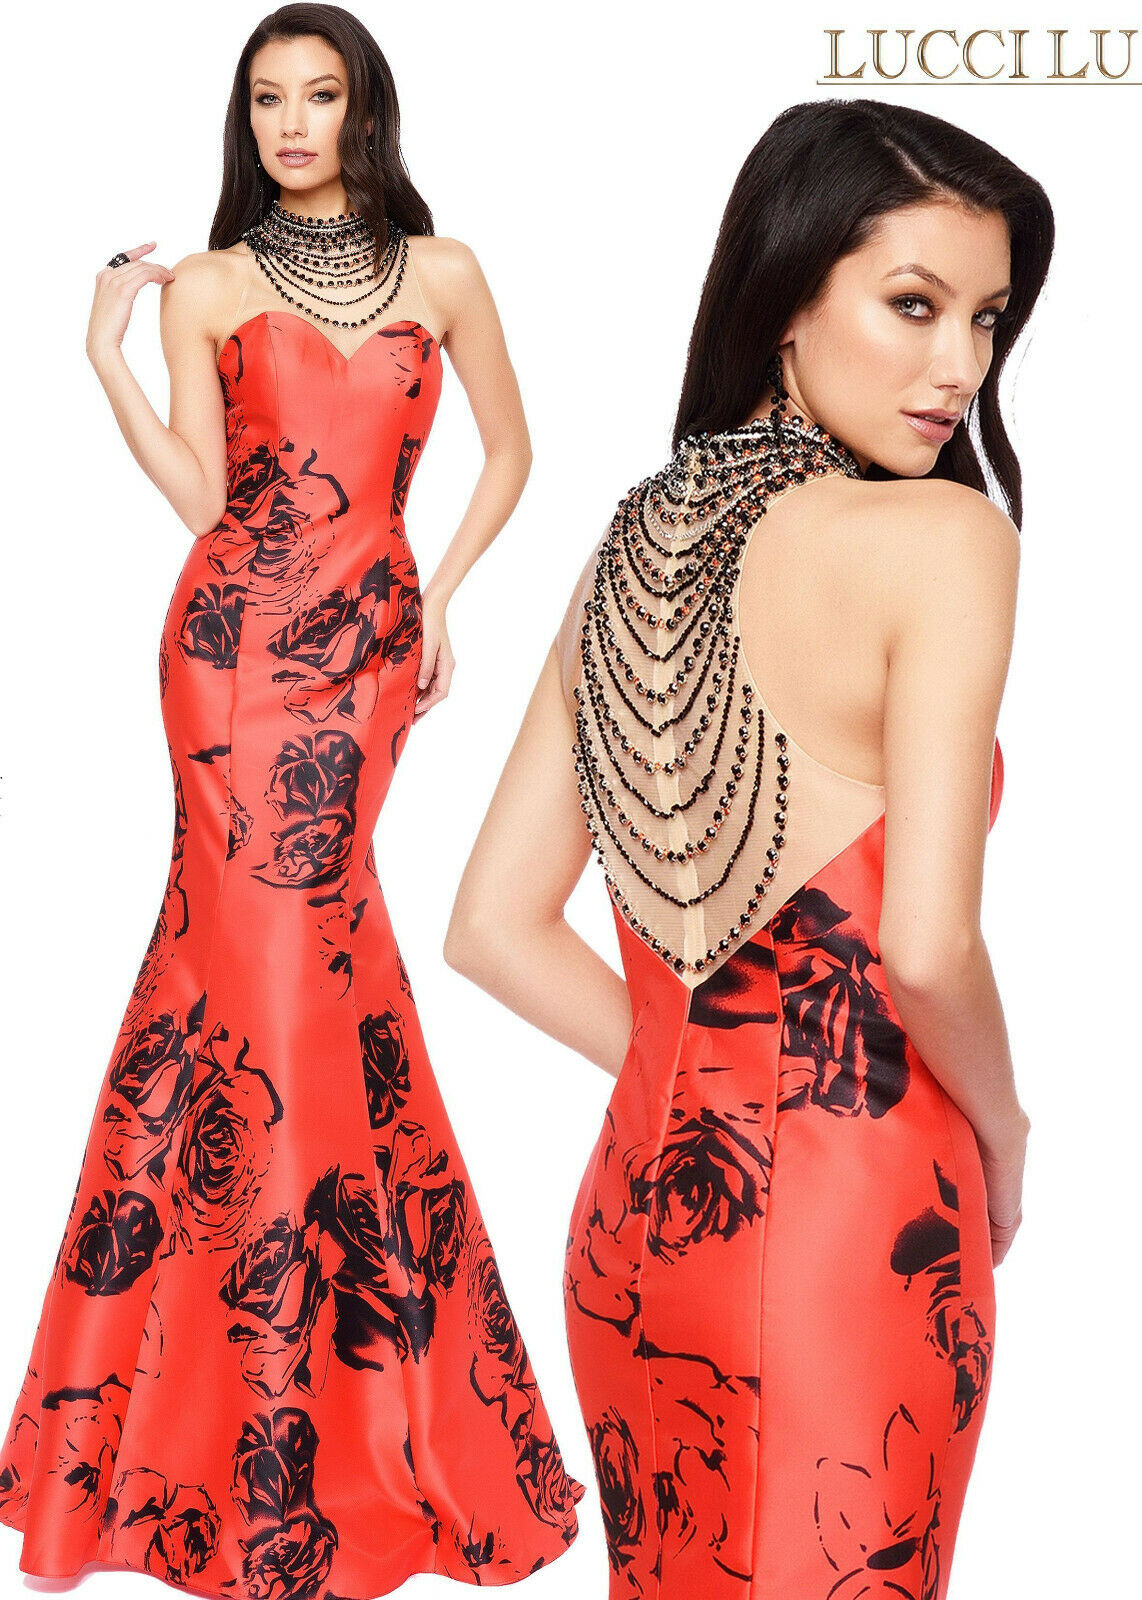 Lucci Lu Rose Print Grad Prom Dress 8108 Red/Black